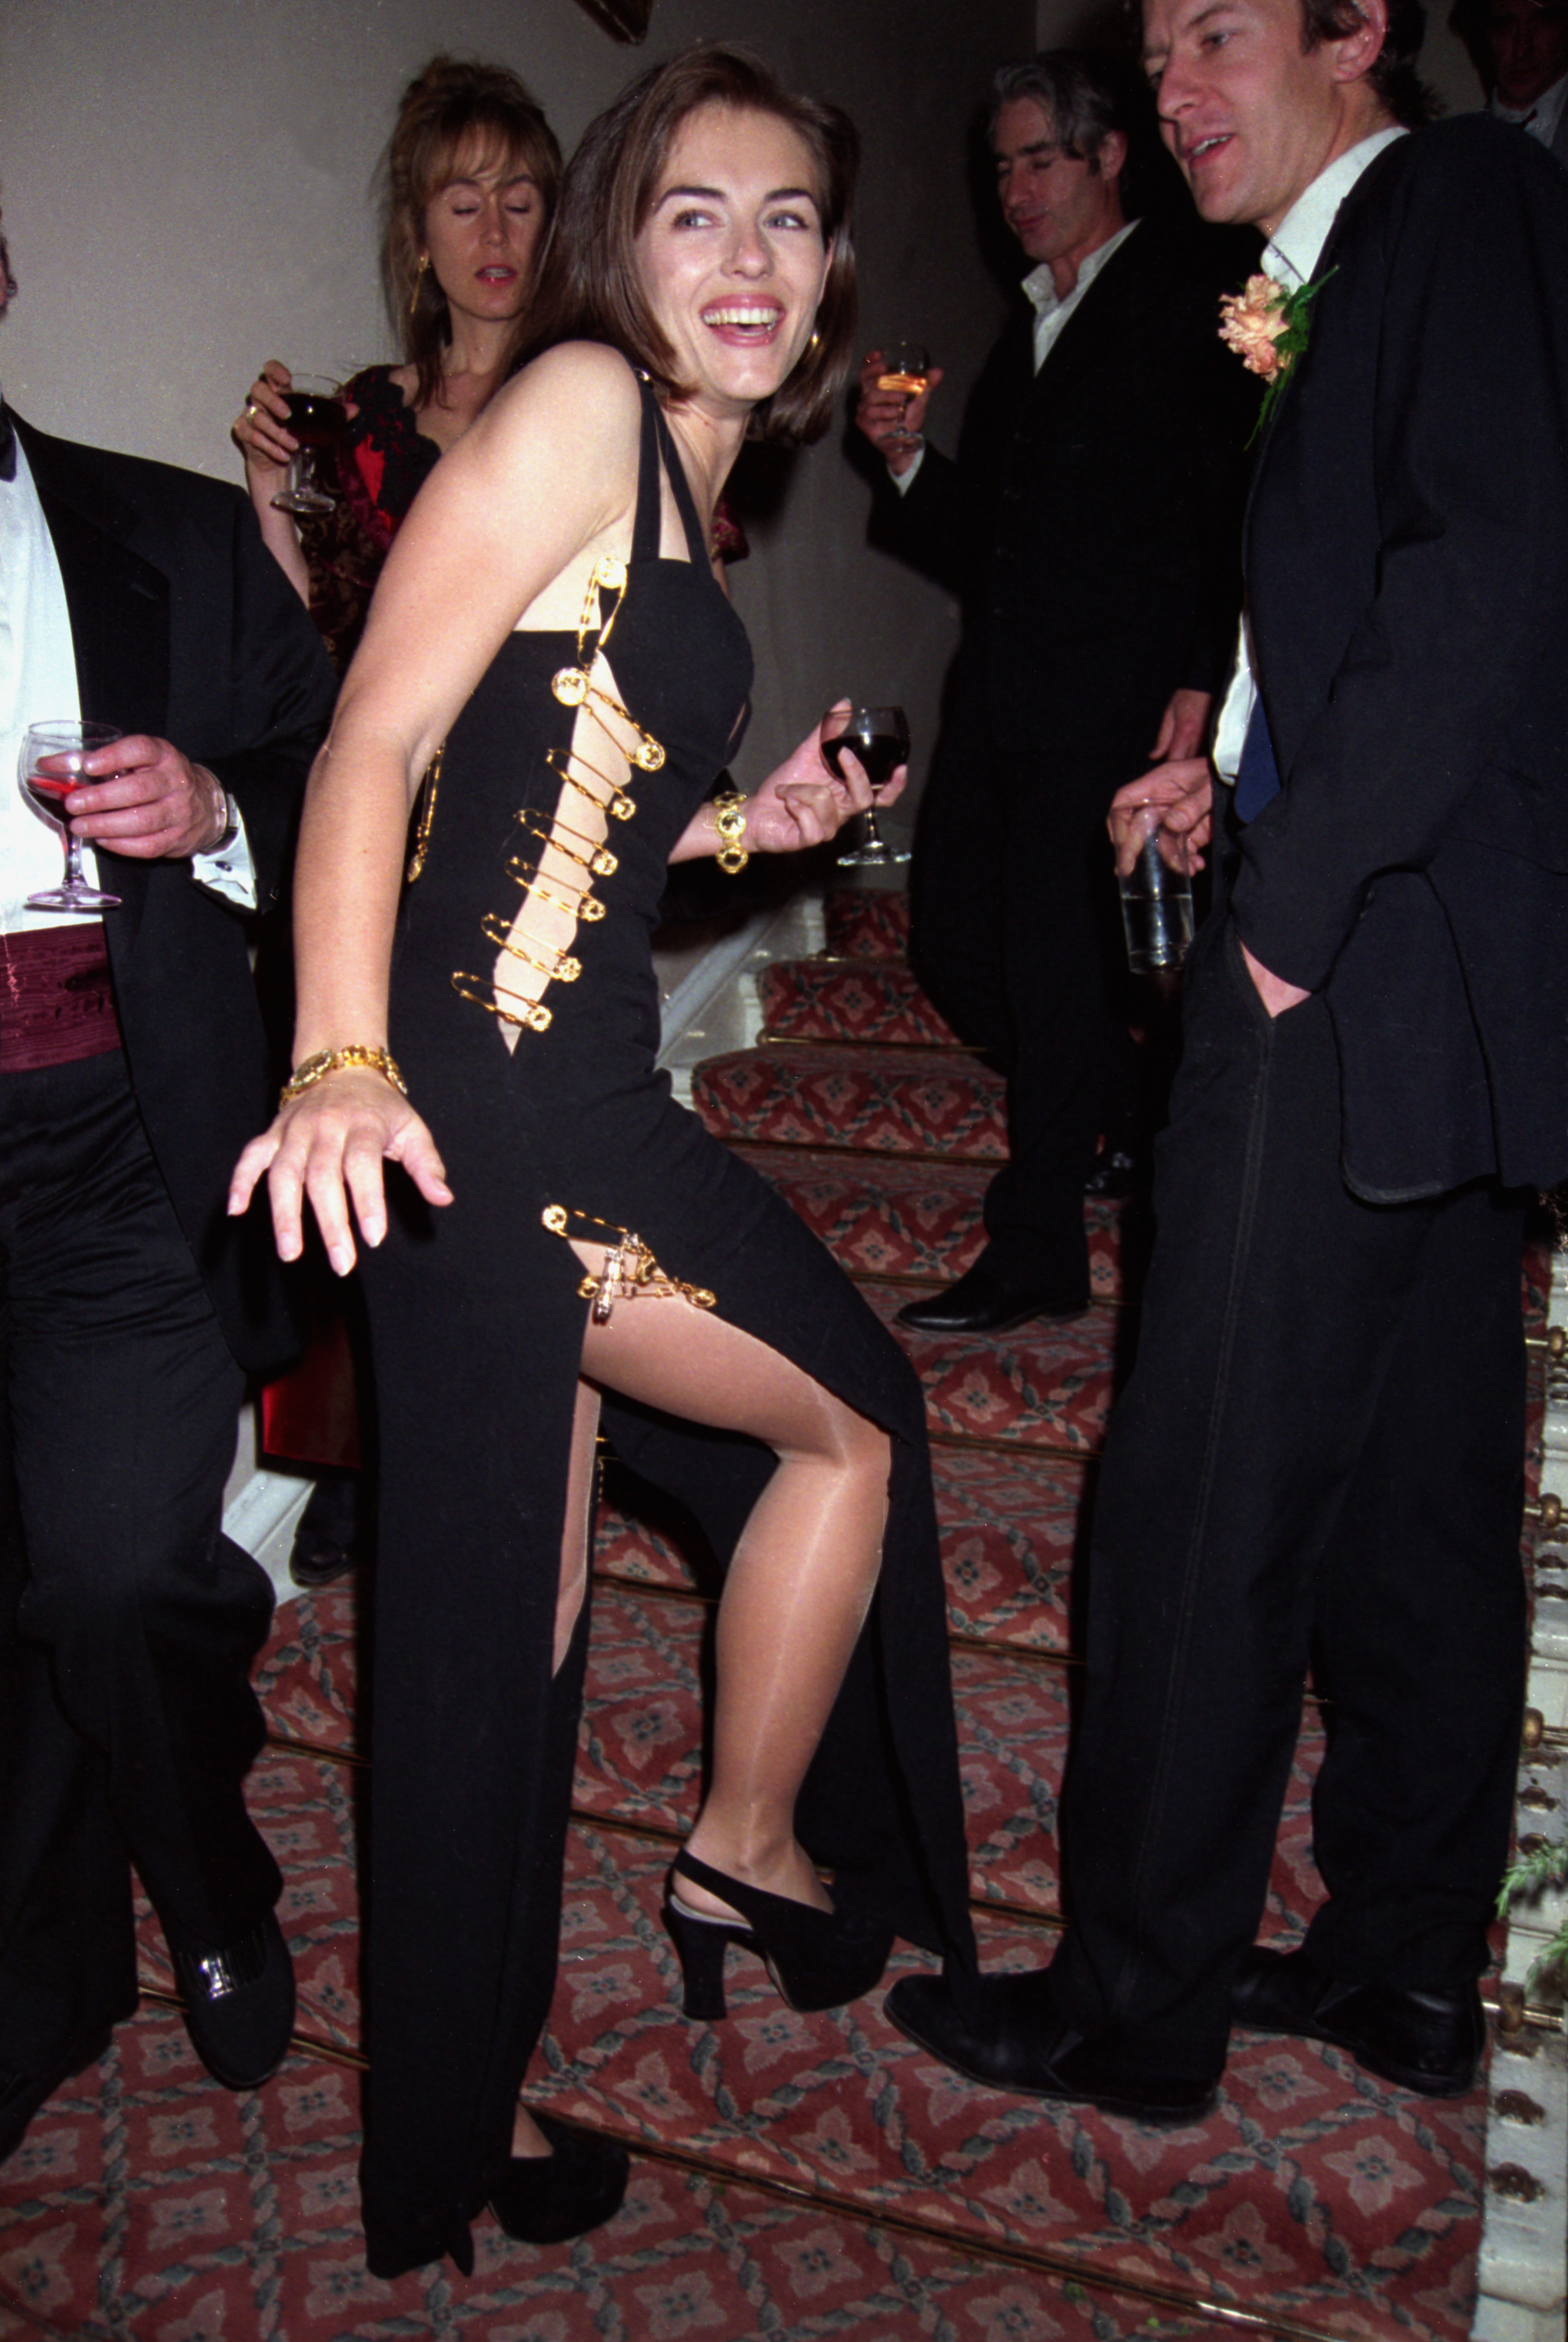 Elizabeth Hurley attends the 'Four Weddings and a Funeral' post-premiere party in London on May 11, 1994